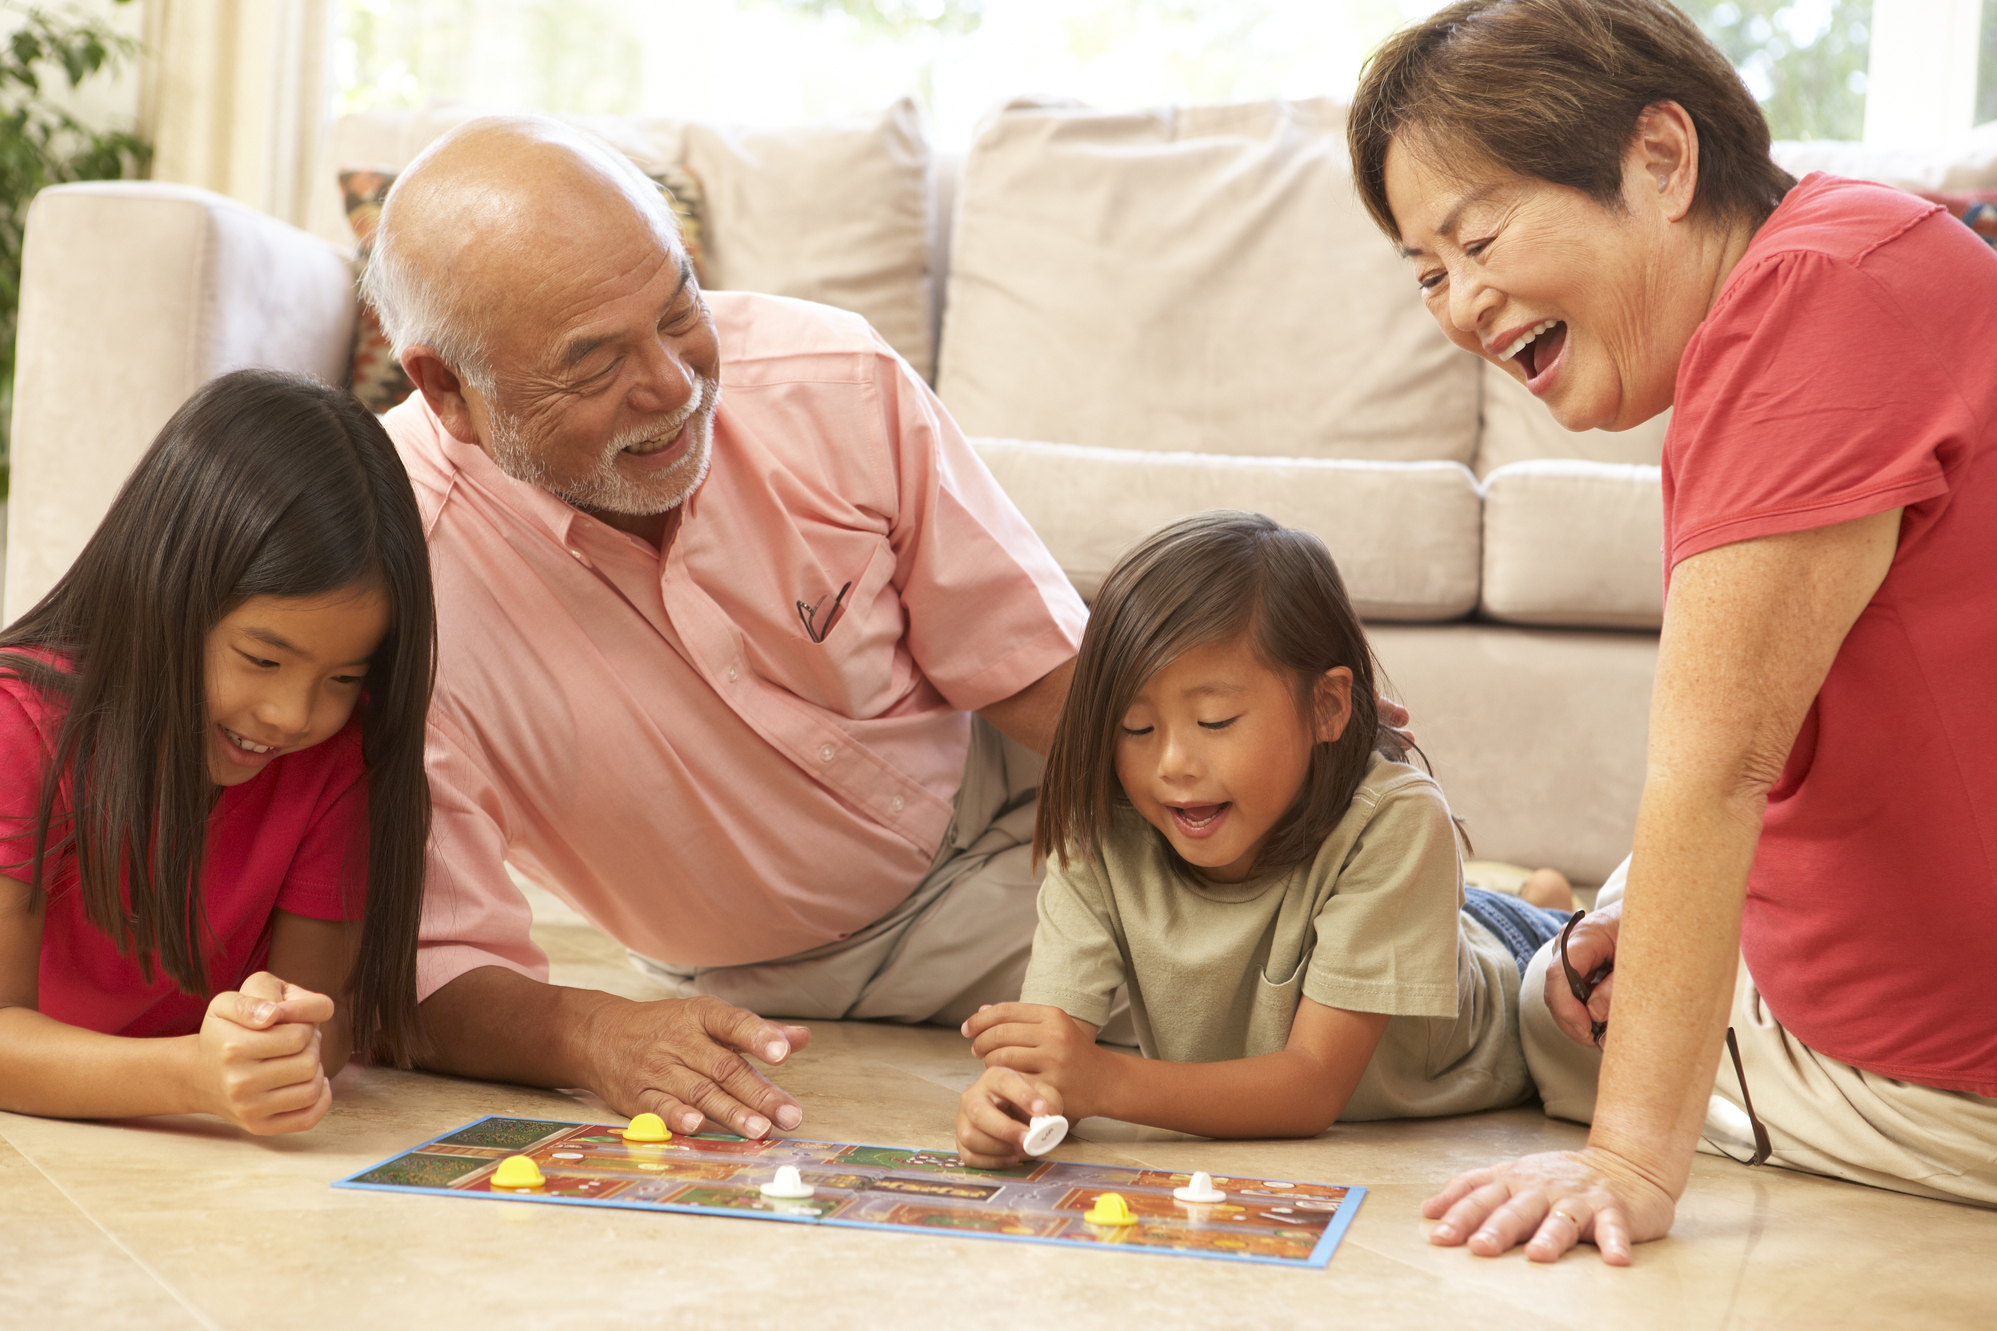 Grandparents and grandchildren at home playing a game